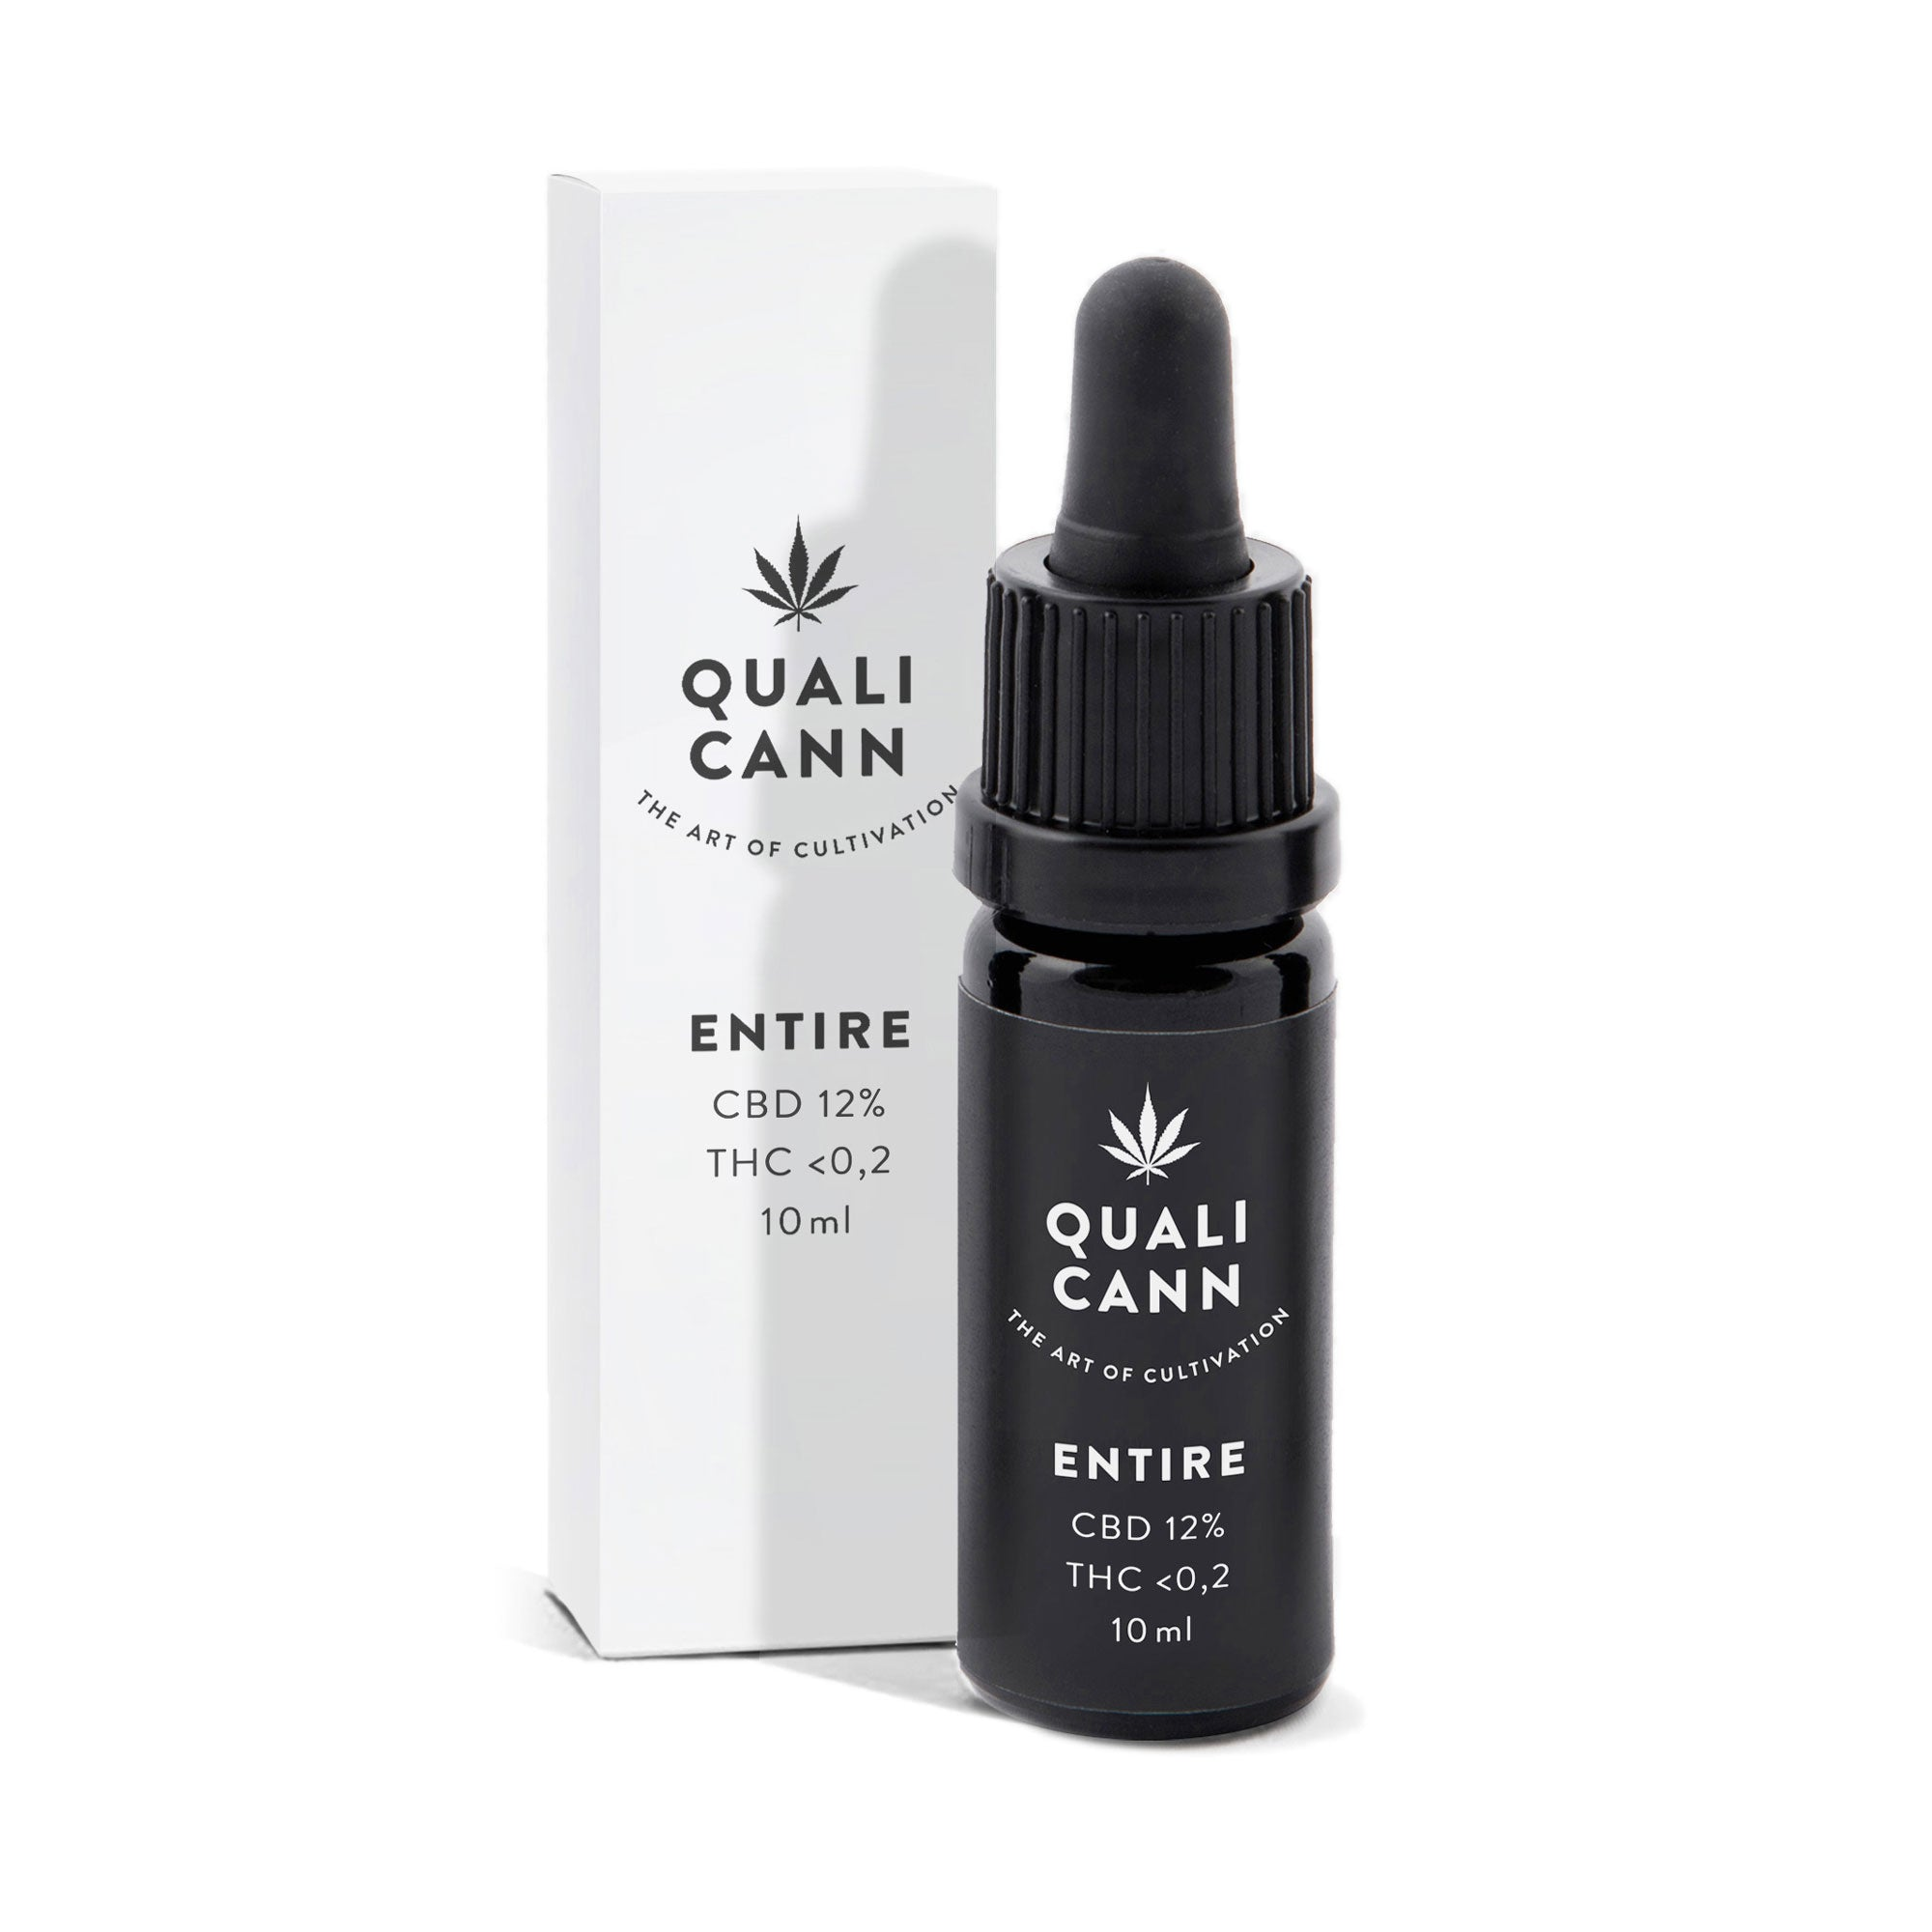 Entire 12% Full-Spectrum CBD Oil (1200mg)-CBD Oil-Qualicann-Swiss CBD Shop-uWeed